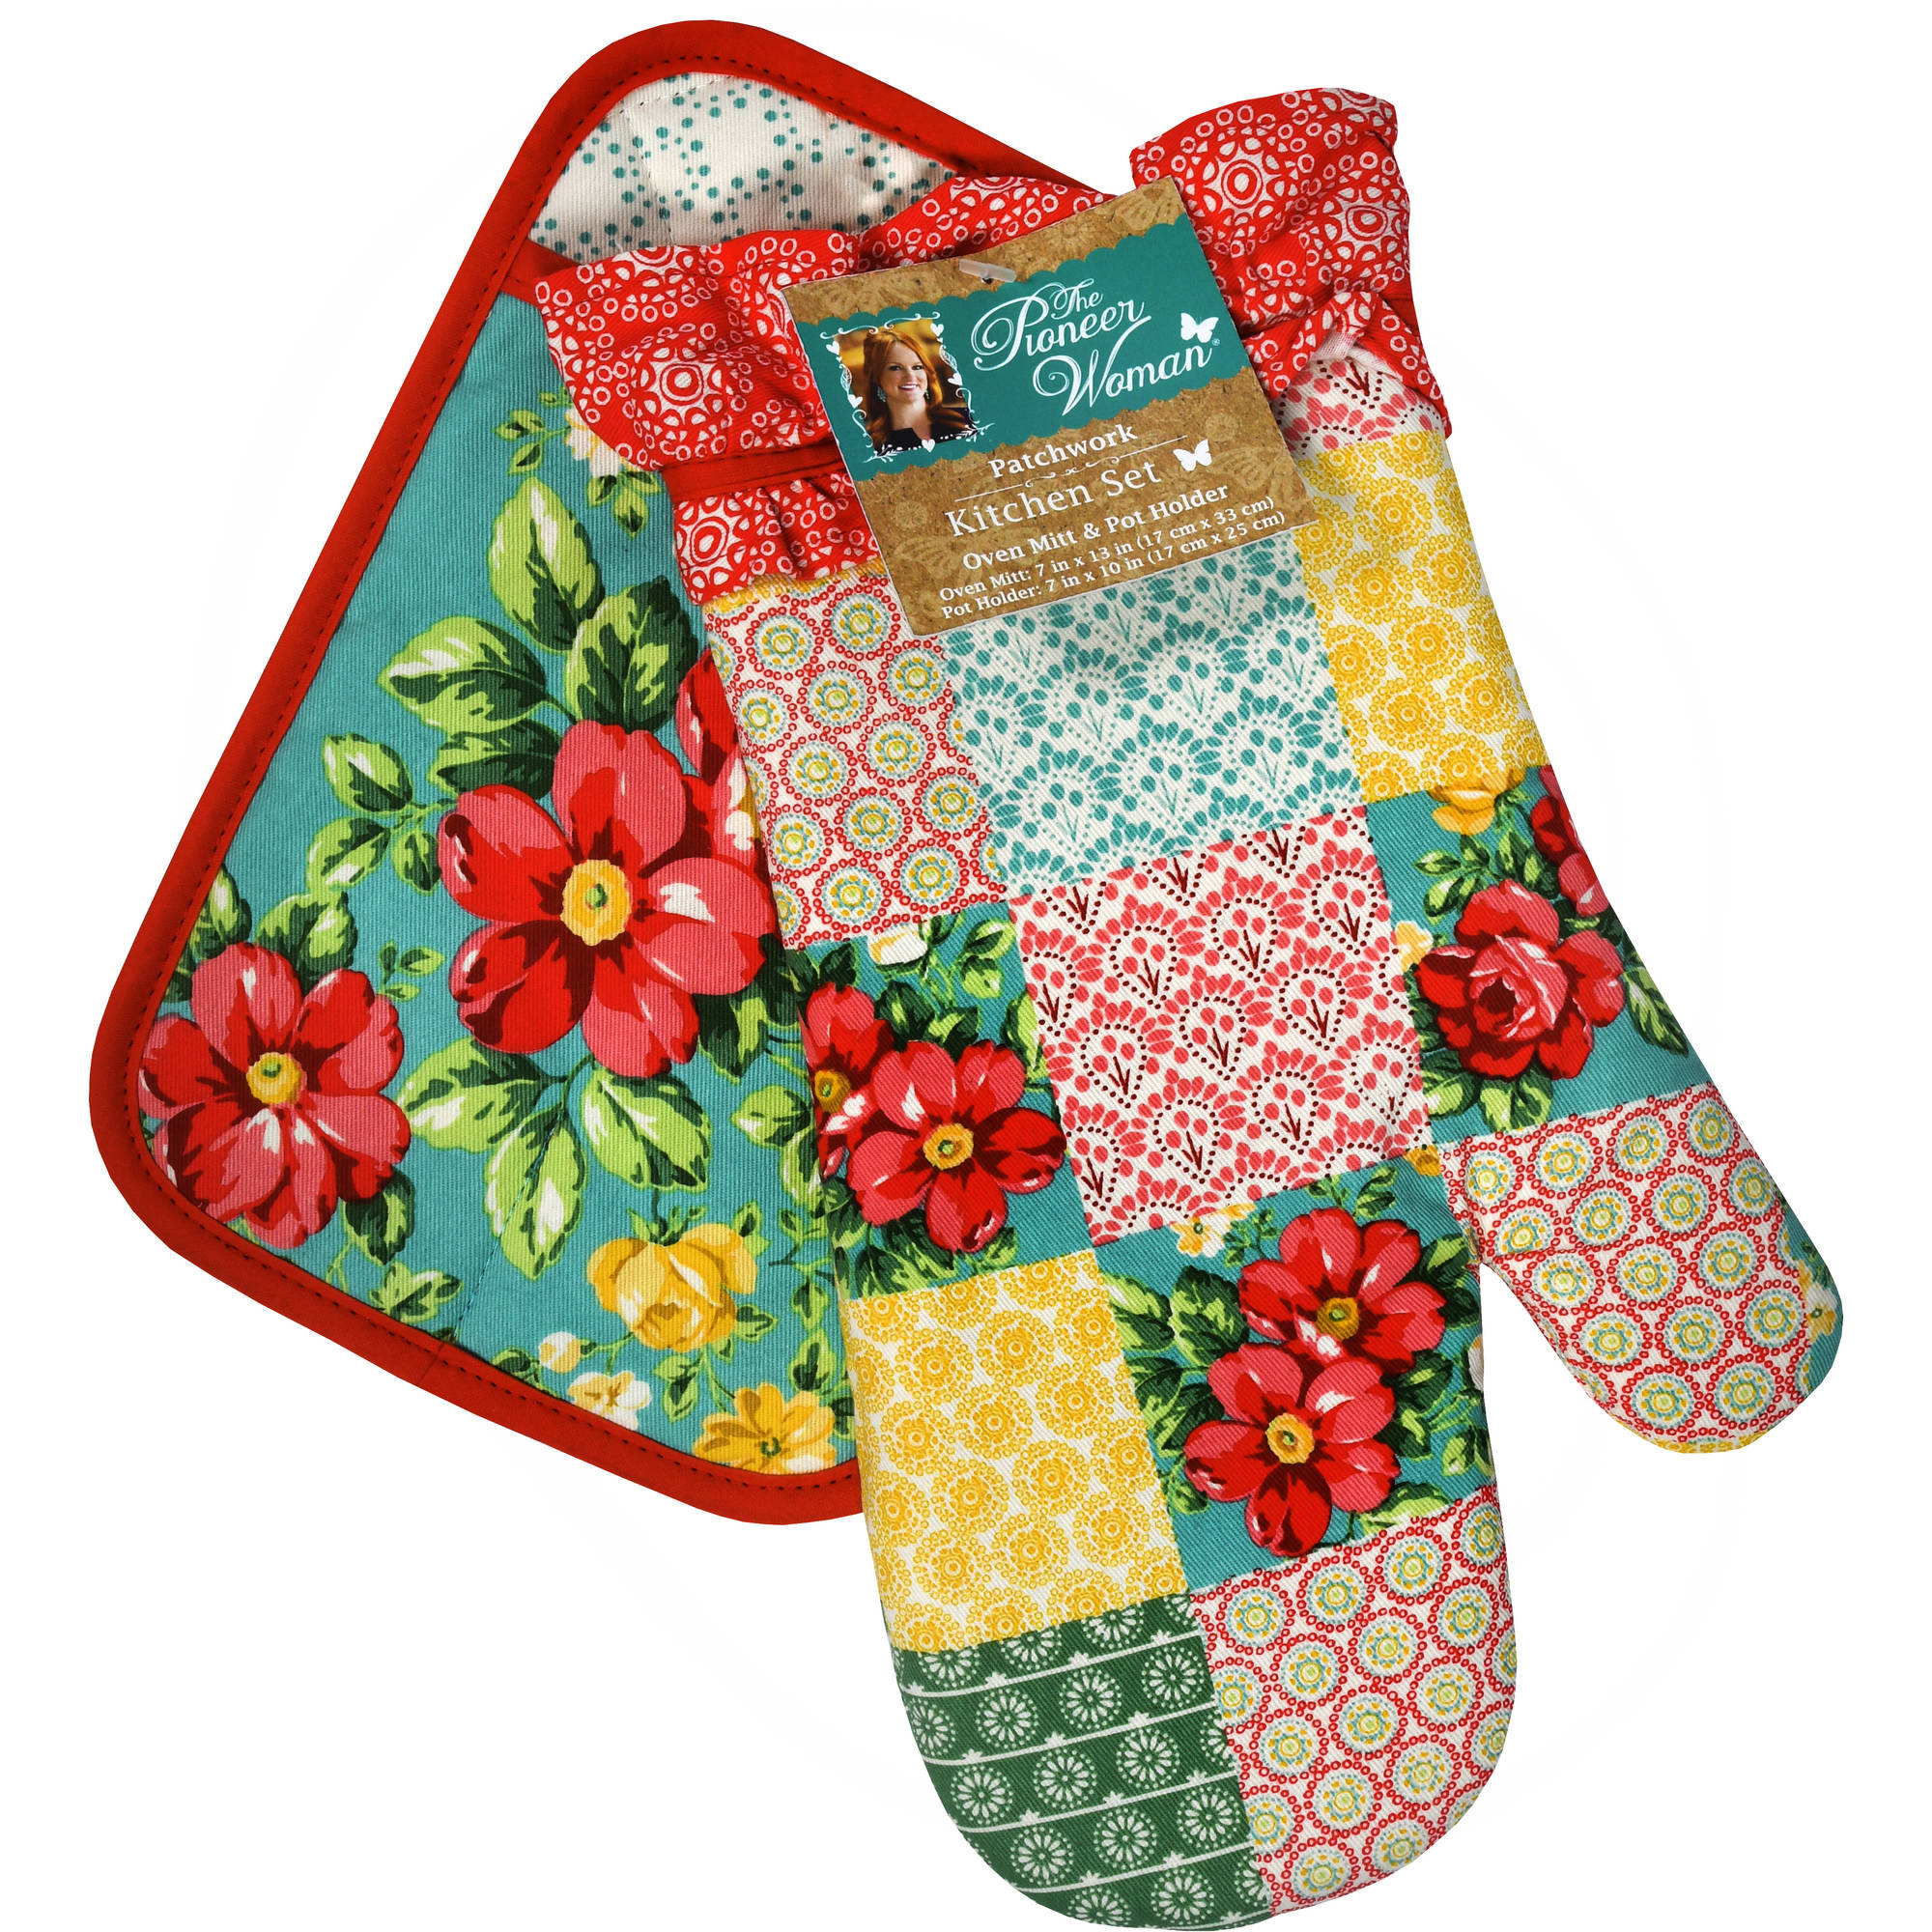 The Pioneer Woman, Patchwork 2 pack oven mitt, pot holder set